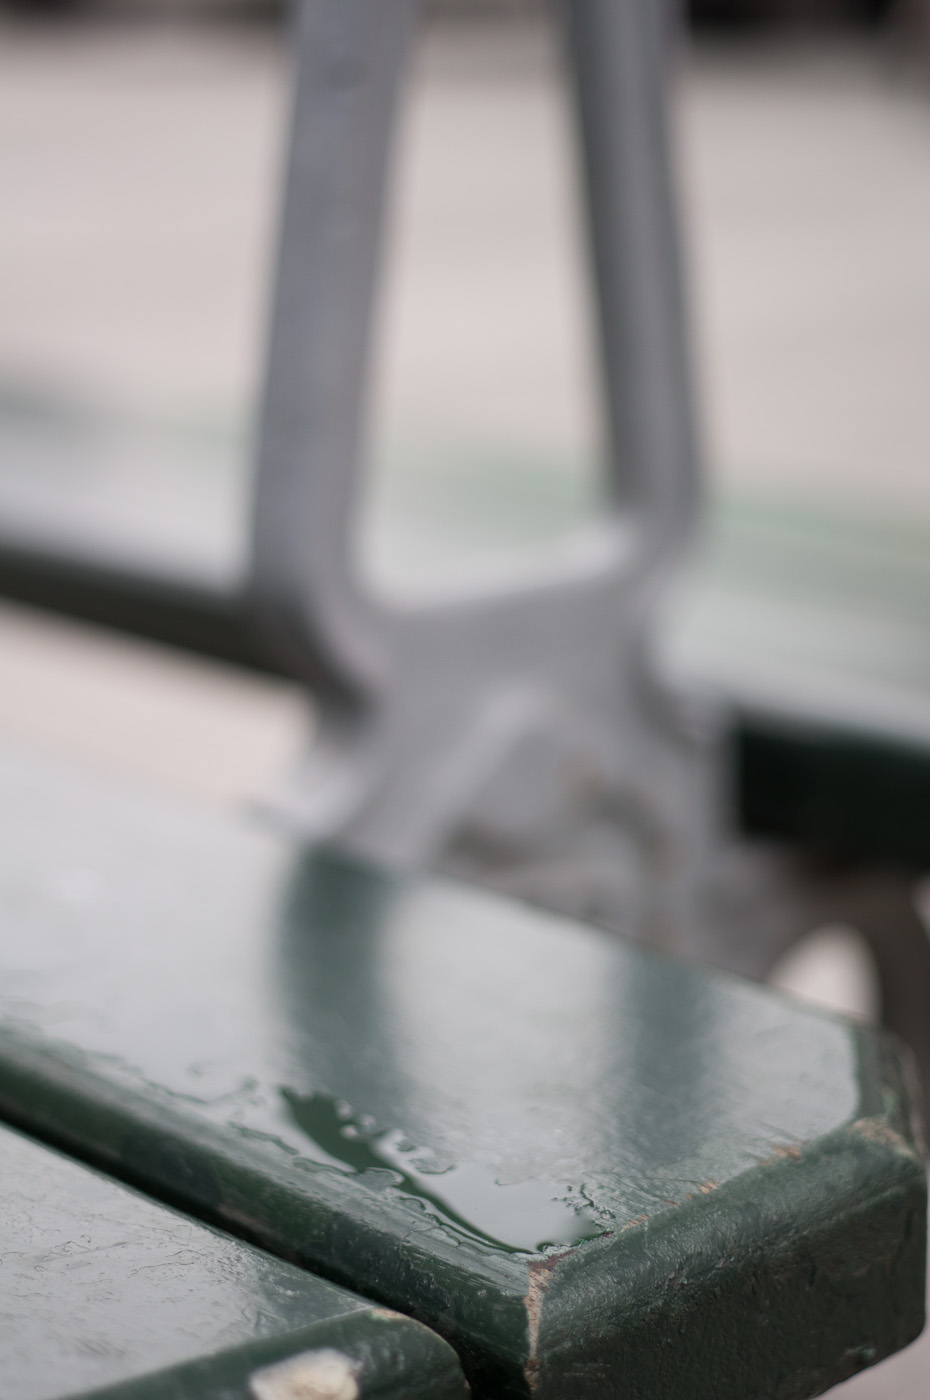 Rainwater on a Paris bench. Sony NEX-5N & Contax G 45mm f/2 Planar